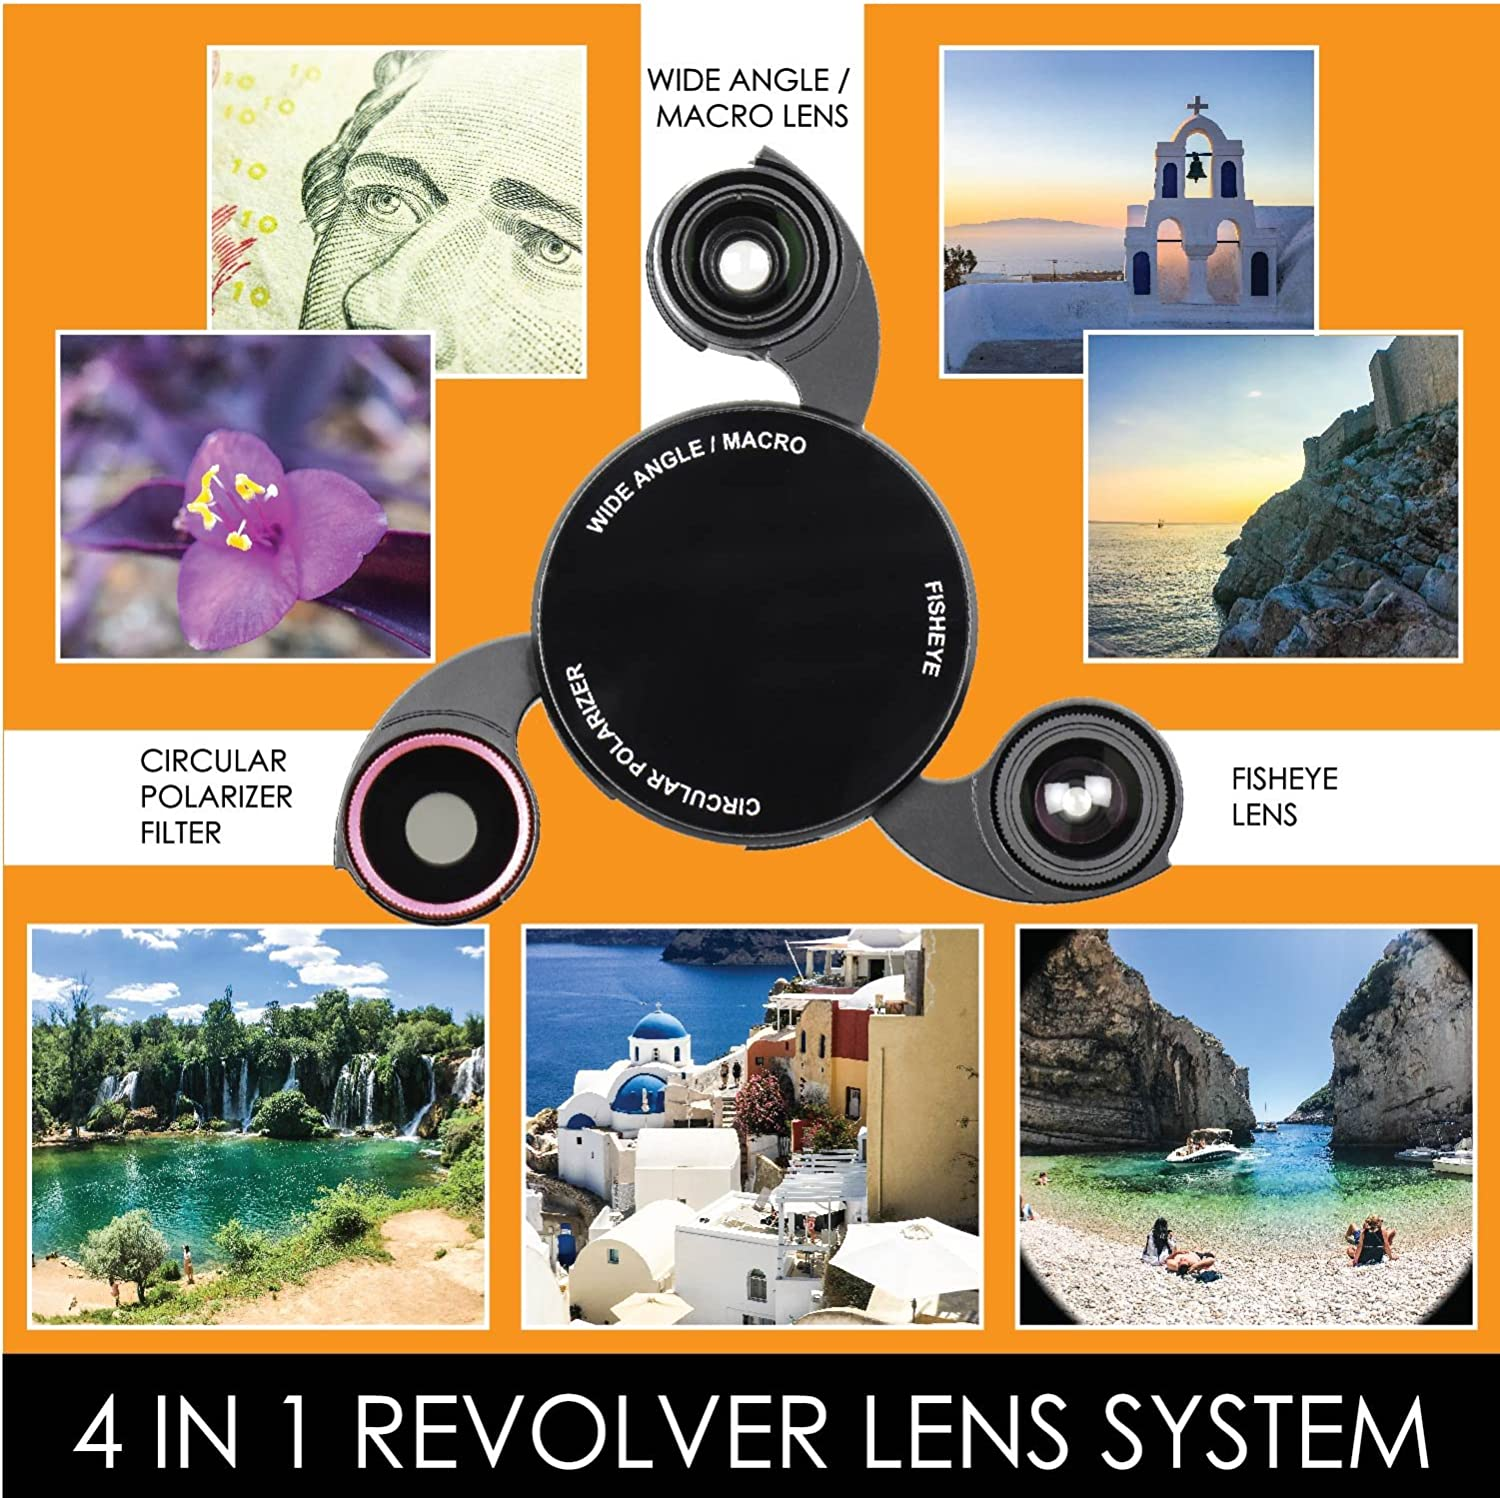 Black Carbon Fiber CPL Wide Angle Lens Macro Lens Fisheye Lens Ztylus Revolver M Series Camera Kit: 4 in 1 Lens with Case for Samsung Galaxy Note 8